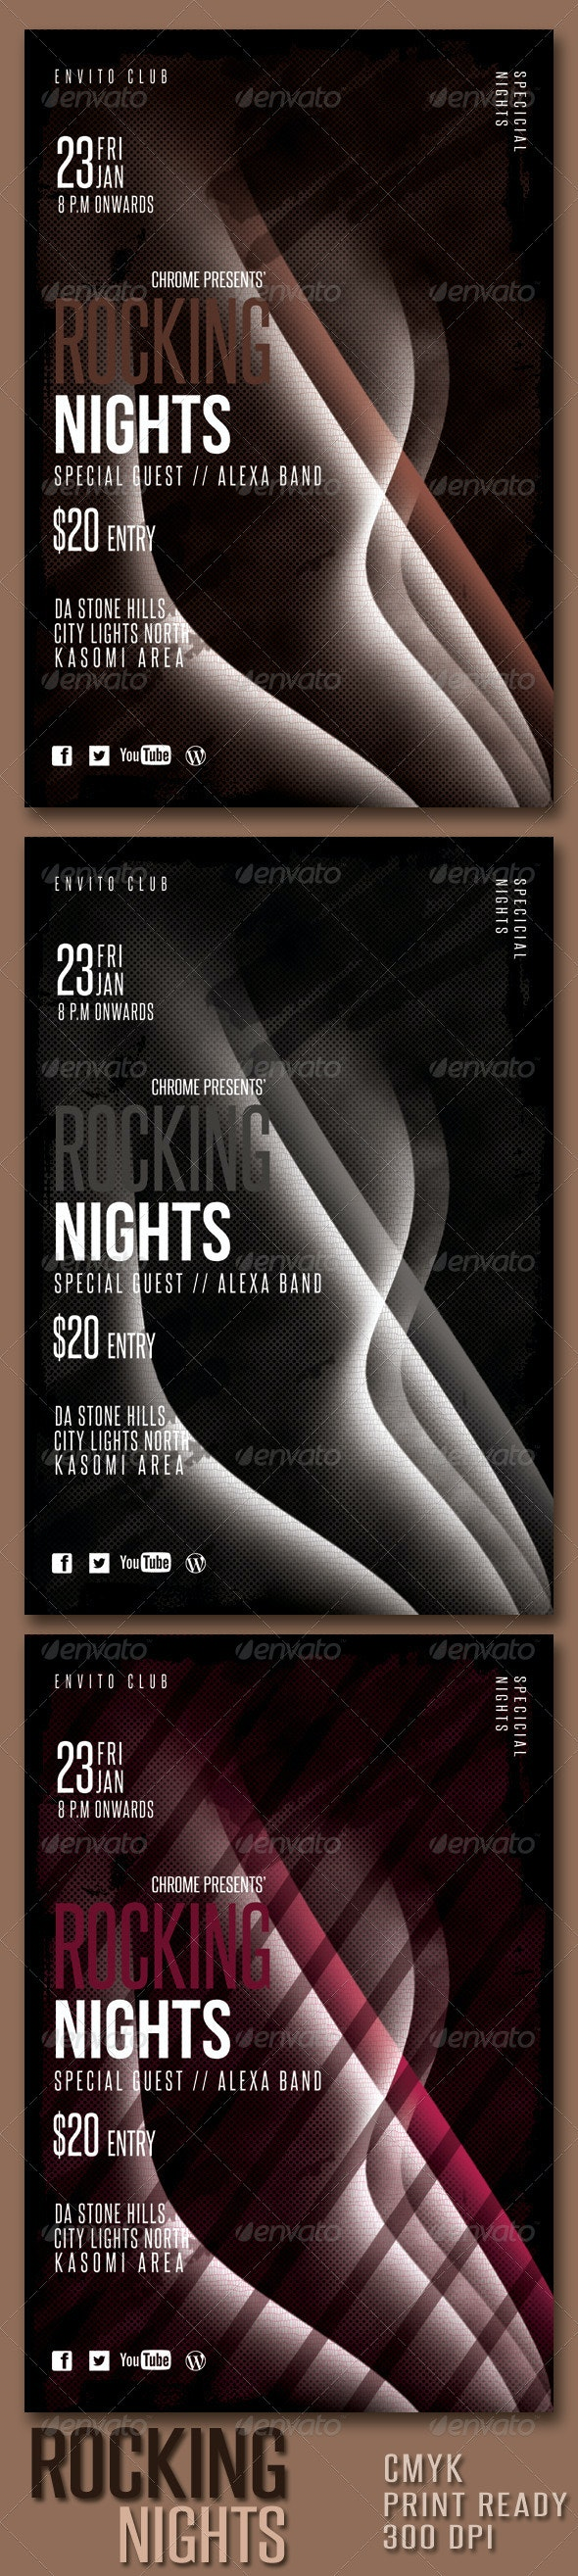 Rocking Nights PSD Flyer Template - Clubs & Parties Events